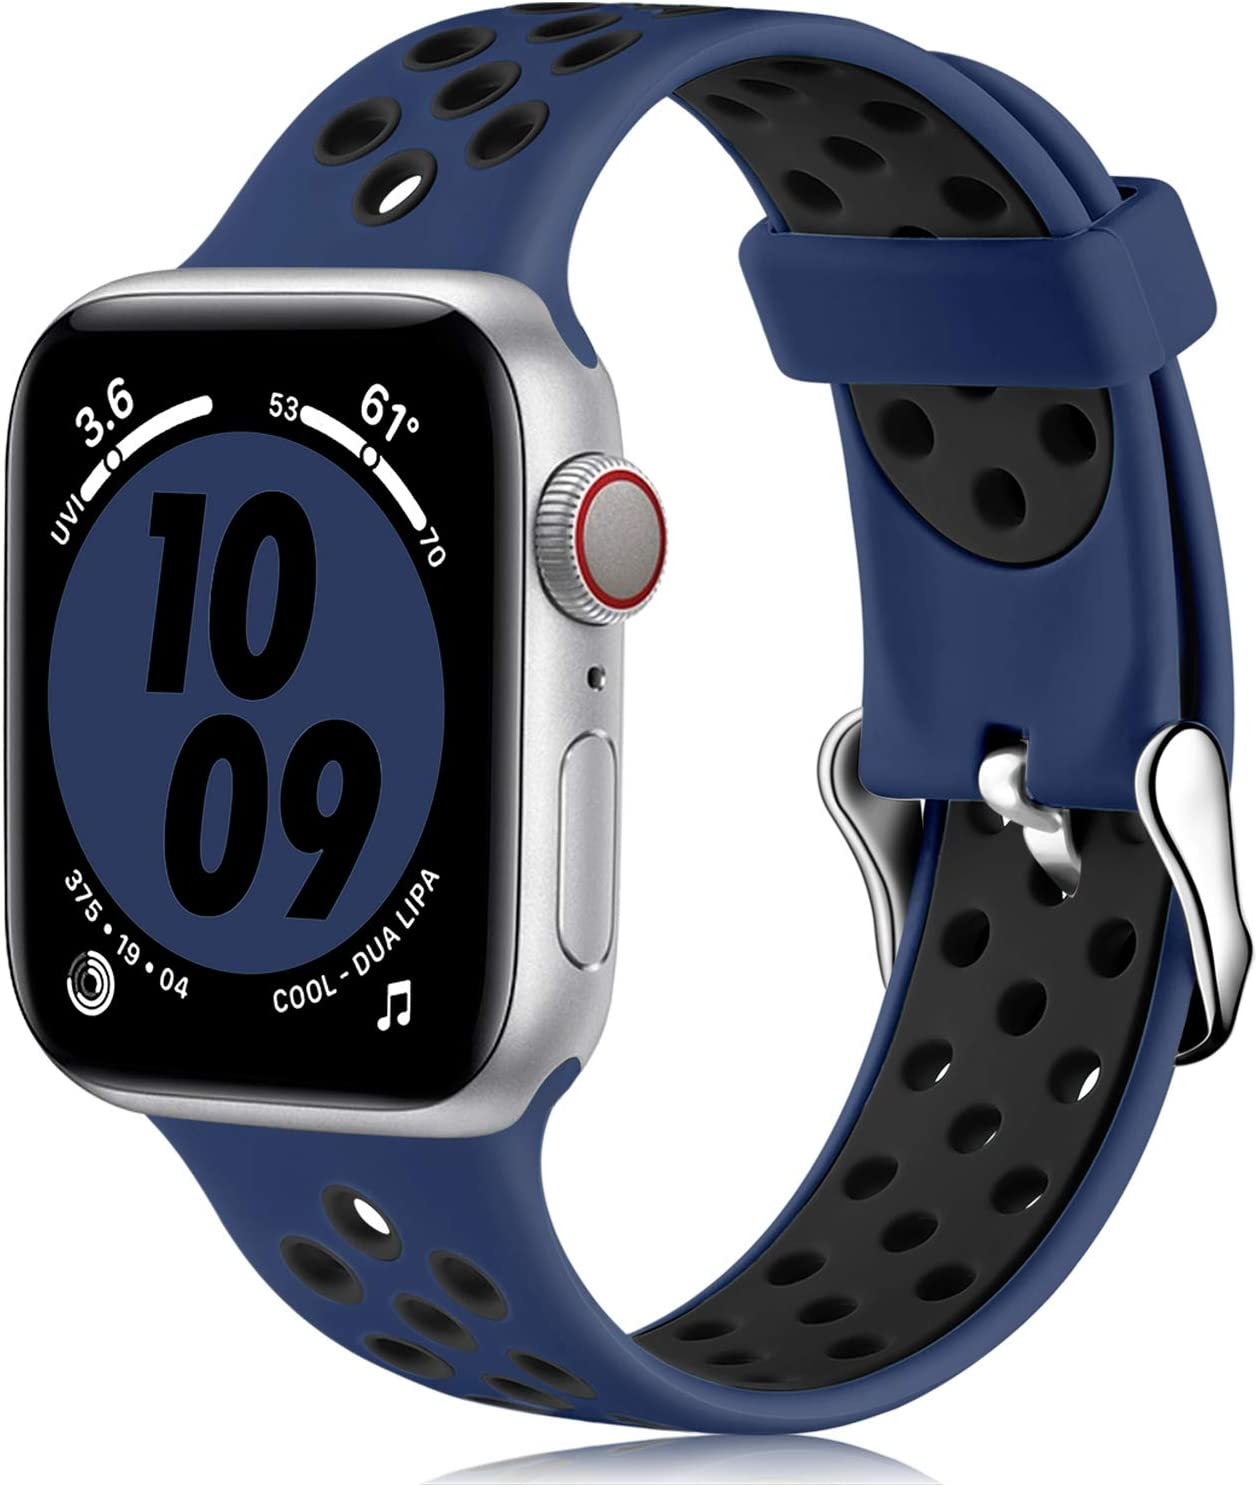 Nofeda bands Compatible with Apple Watch Band 38mm 40mm for Women Men,Soft Silicone Waterproof Breathable Replacement Wristband Sport Strap for iWatch Series 1/2/3/4/5/6/SE,Navy Blue/Black, M/L